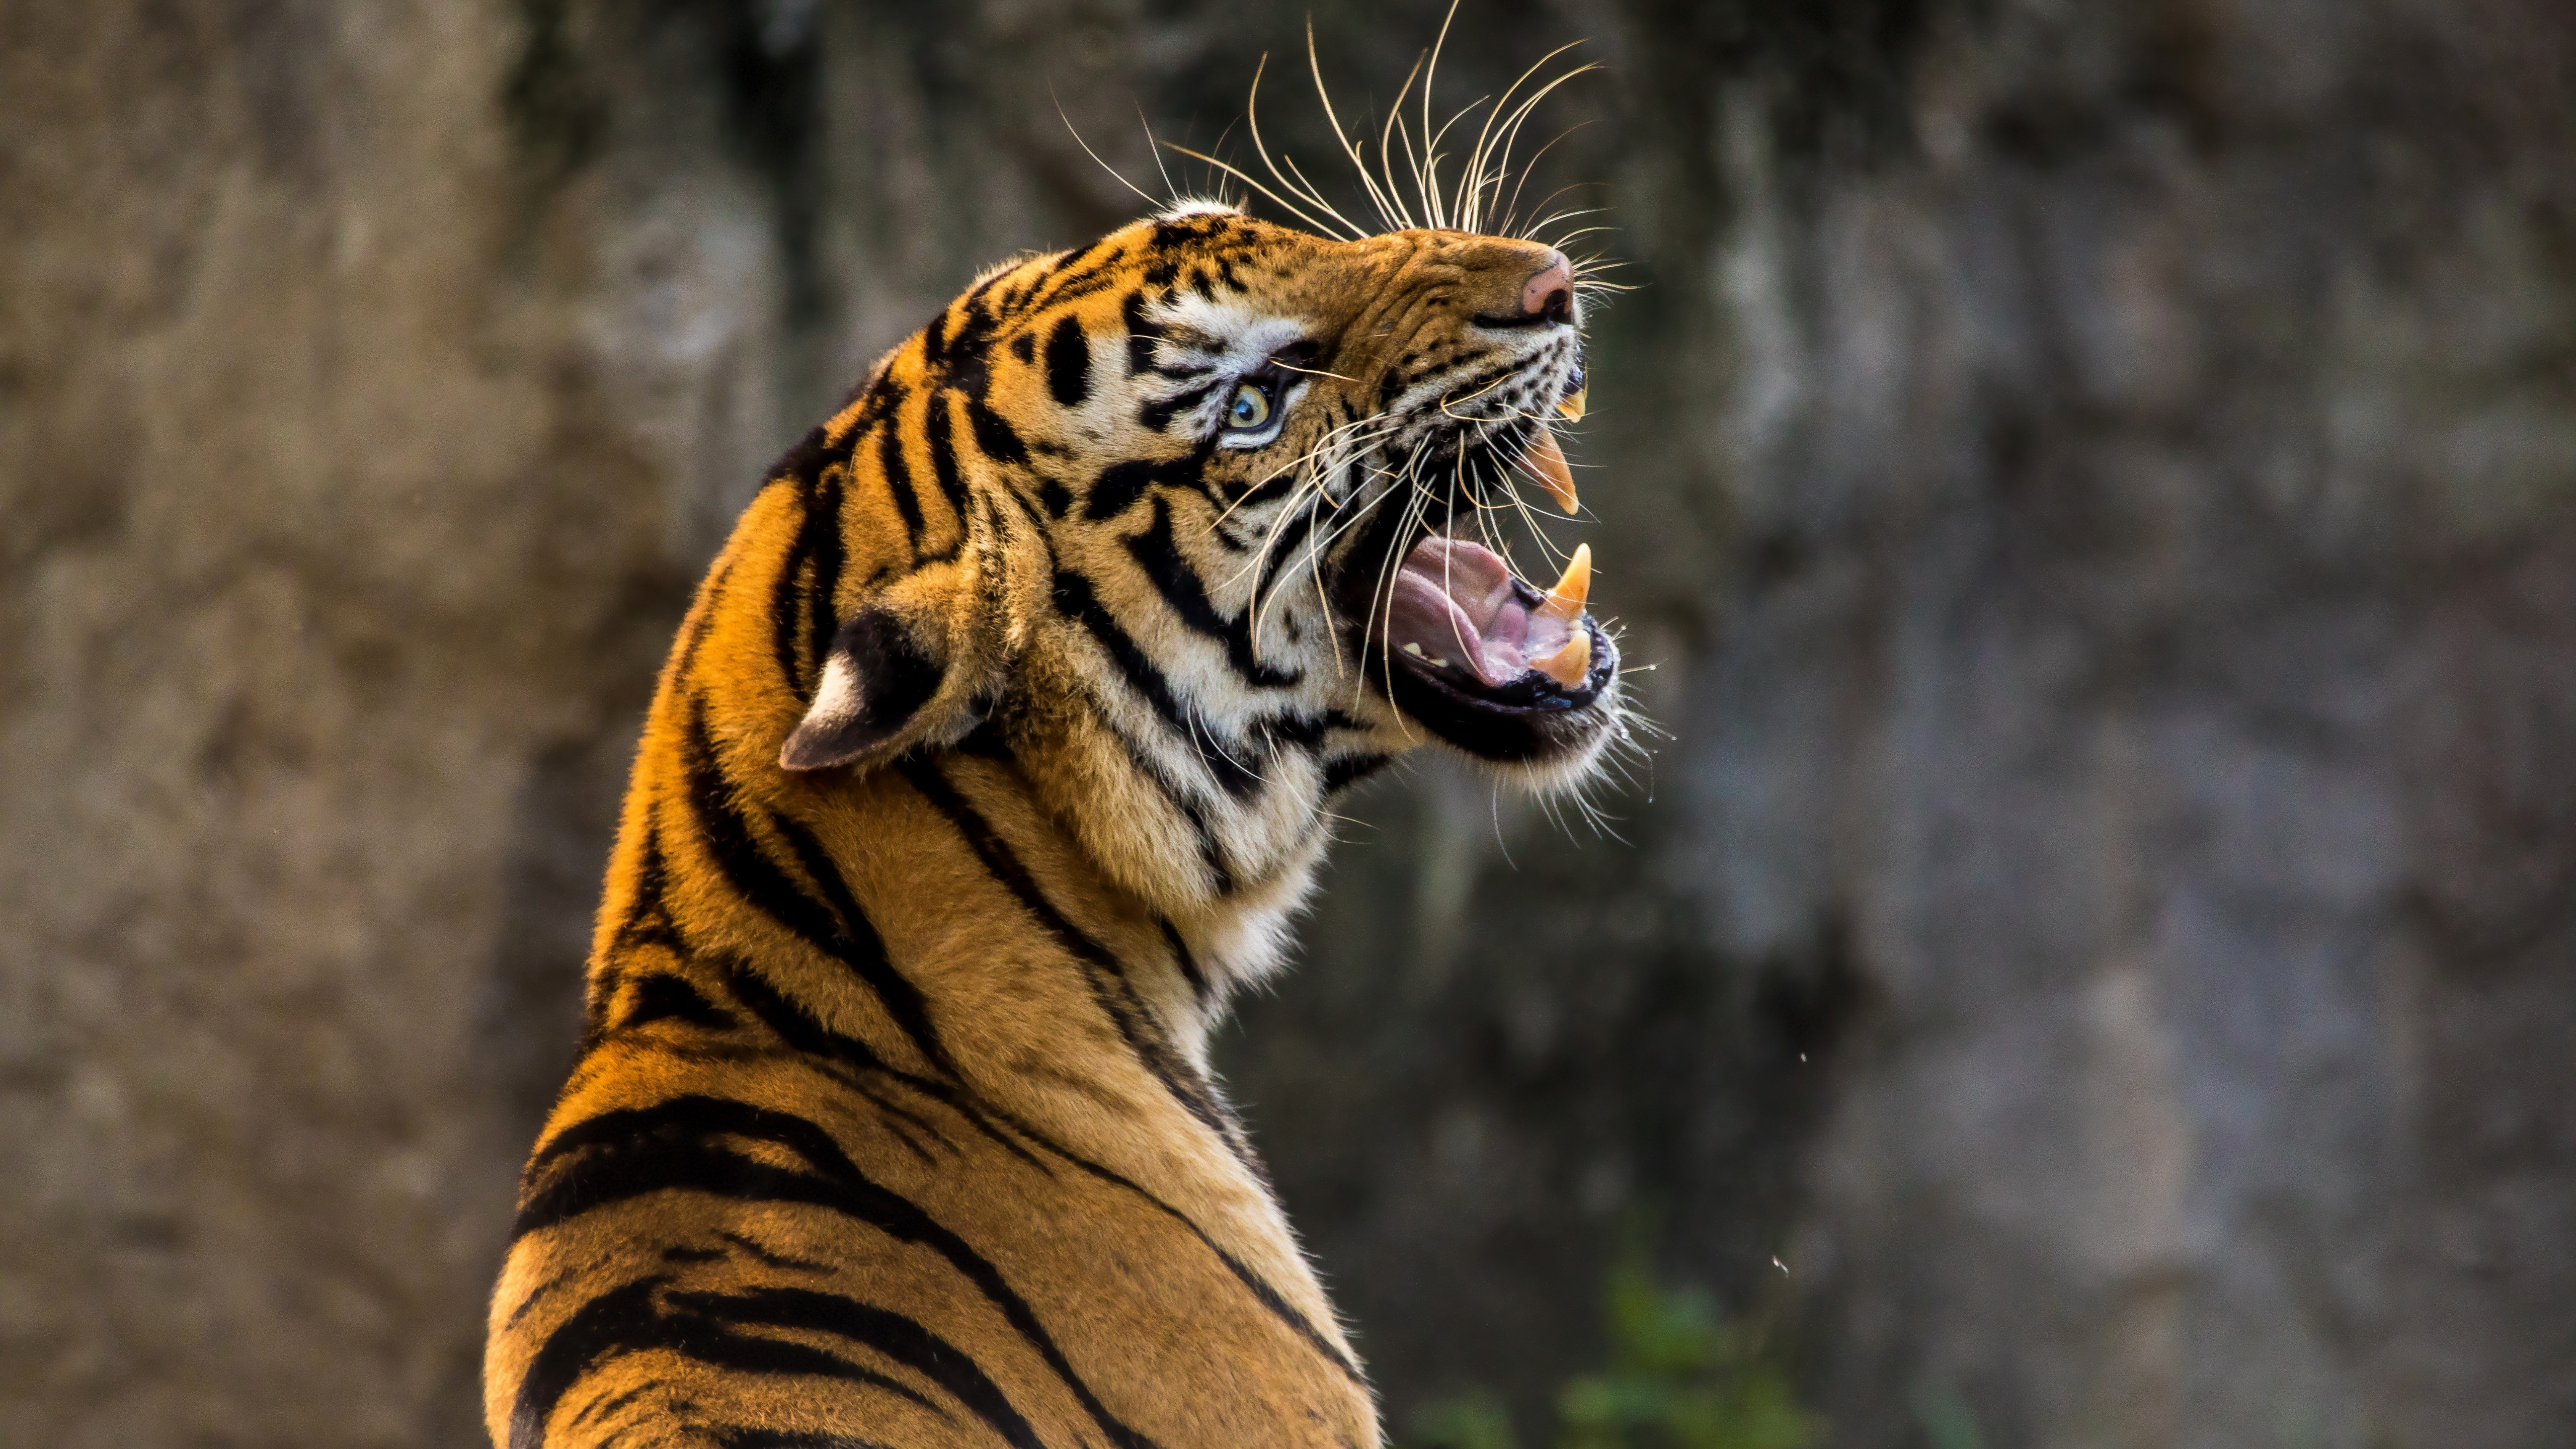 Angry tiger | 5120x2880 wallpaper